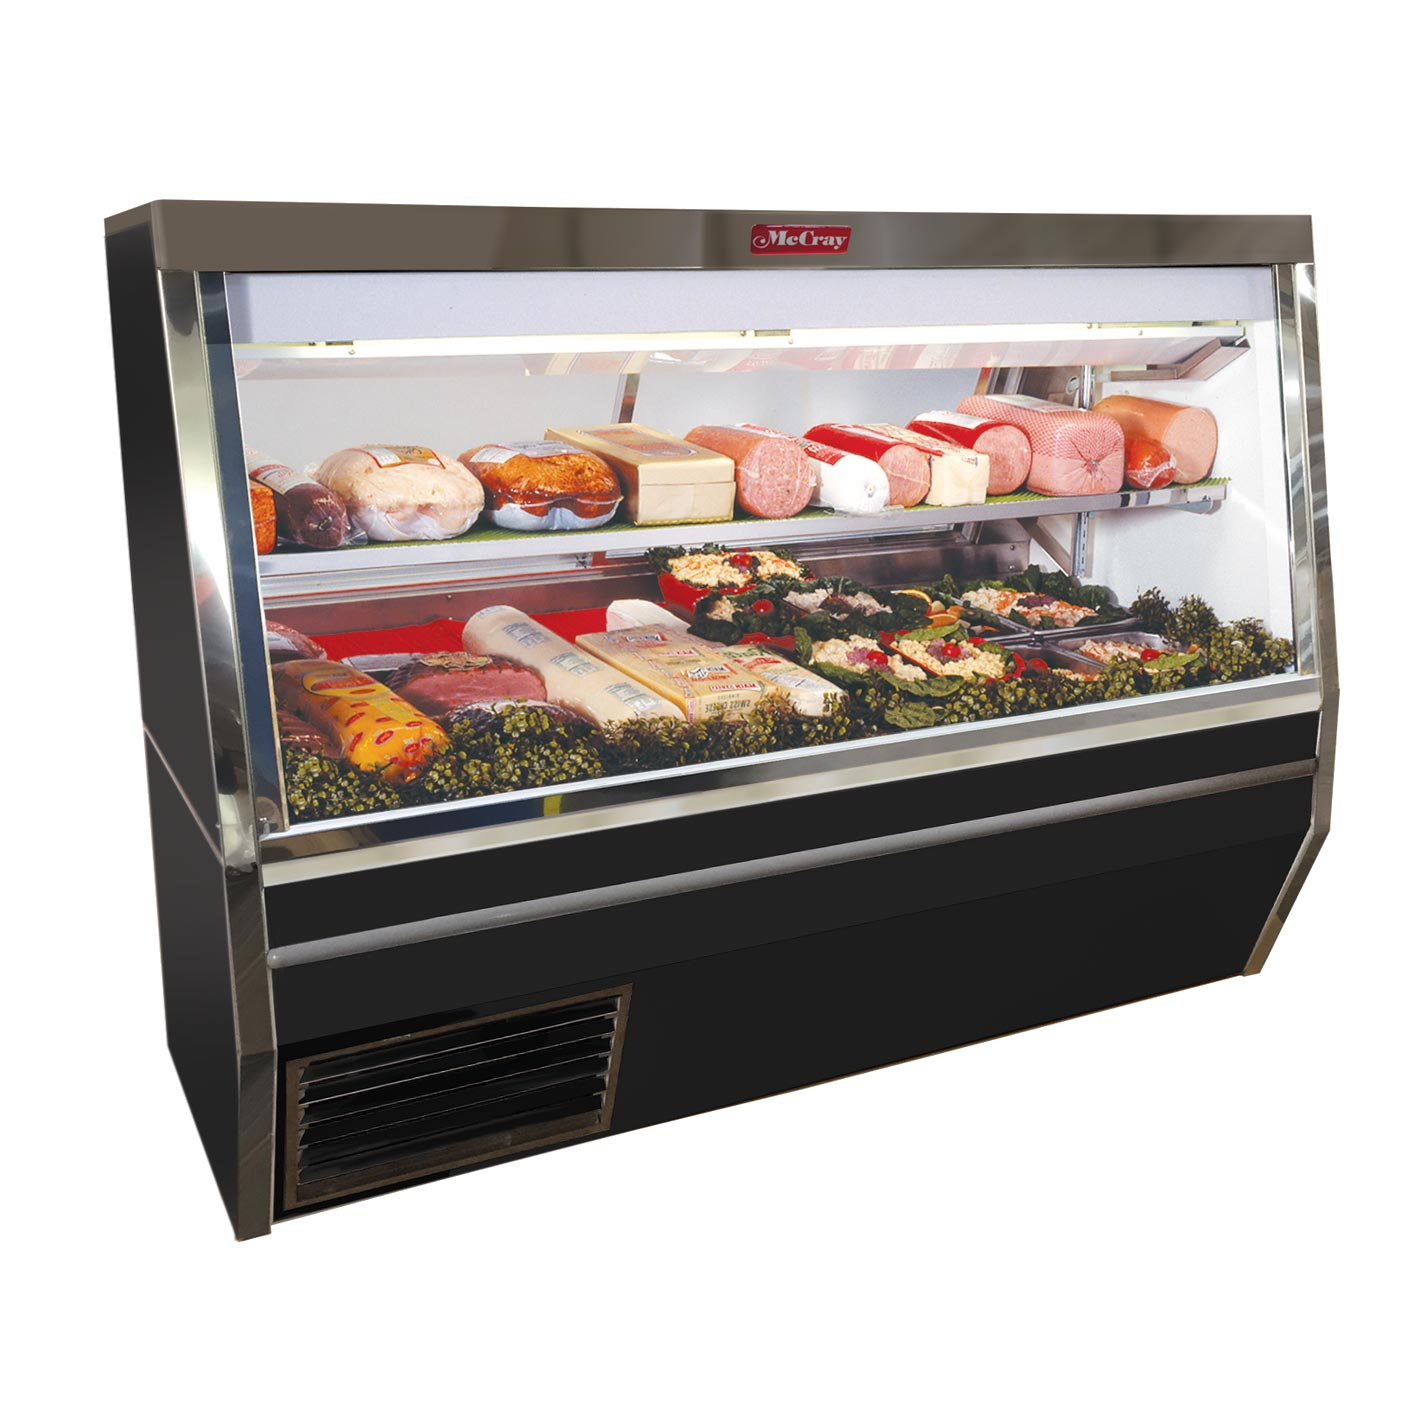 Howard-McCray SC-CDS34N-12-BE-LS-LED display case, refrigerated deli